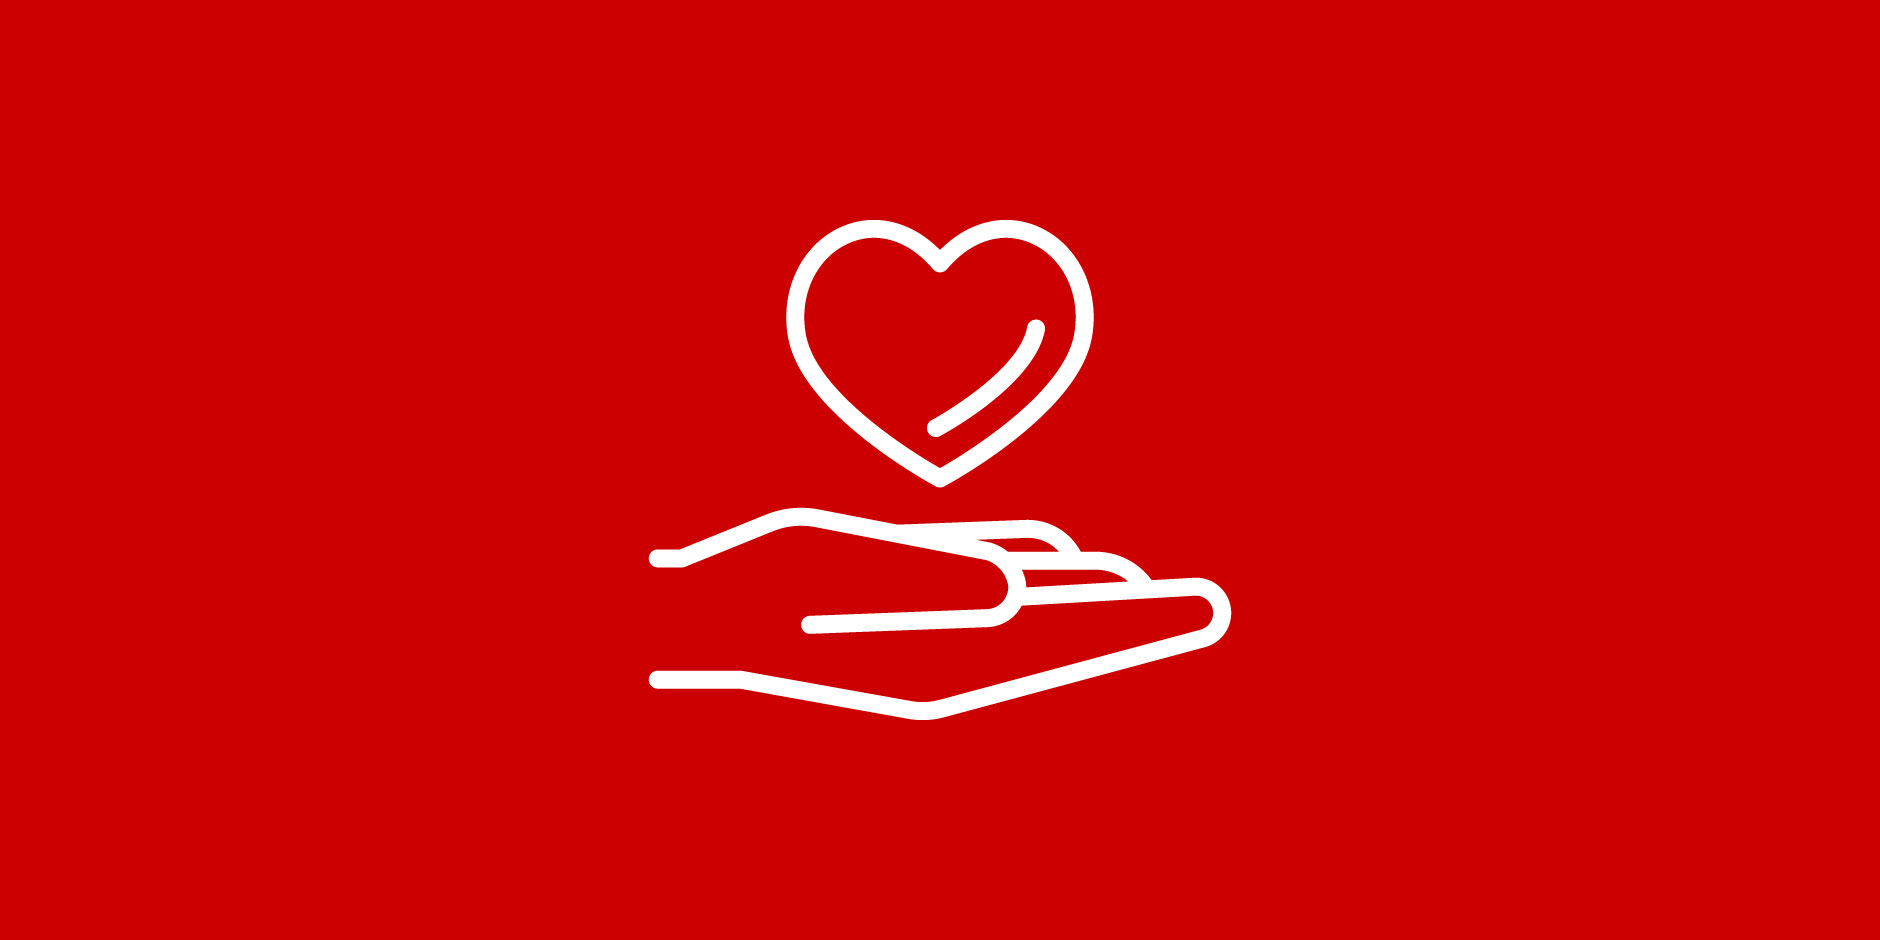 an illustration with white outline of a hand holding a heart against a red background